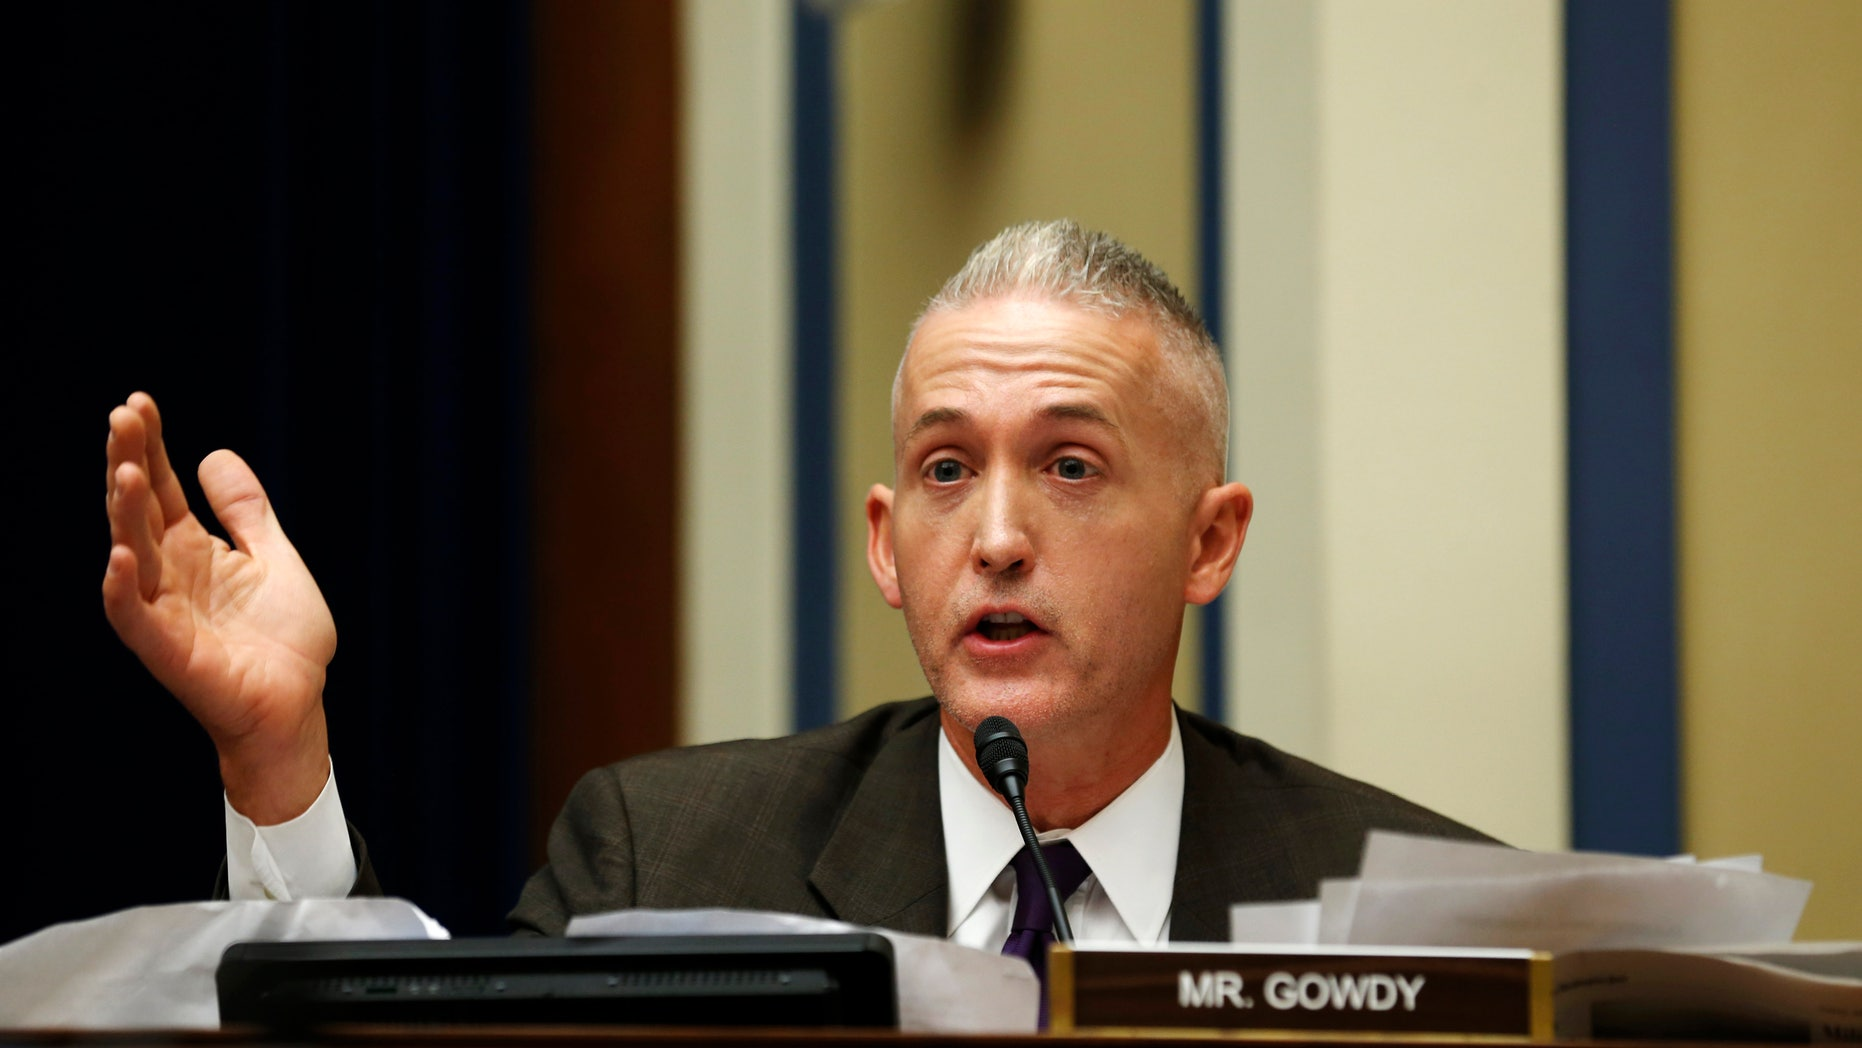 Sept. 30, 2014: Rep. Trey Gowdy questions U.S. Secret Service Director Julia Pierson during a House Oversight and Government Reform Committee hearing in Washington.